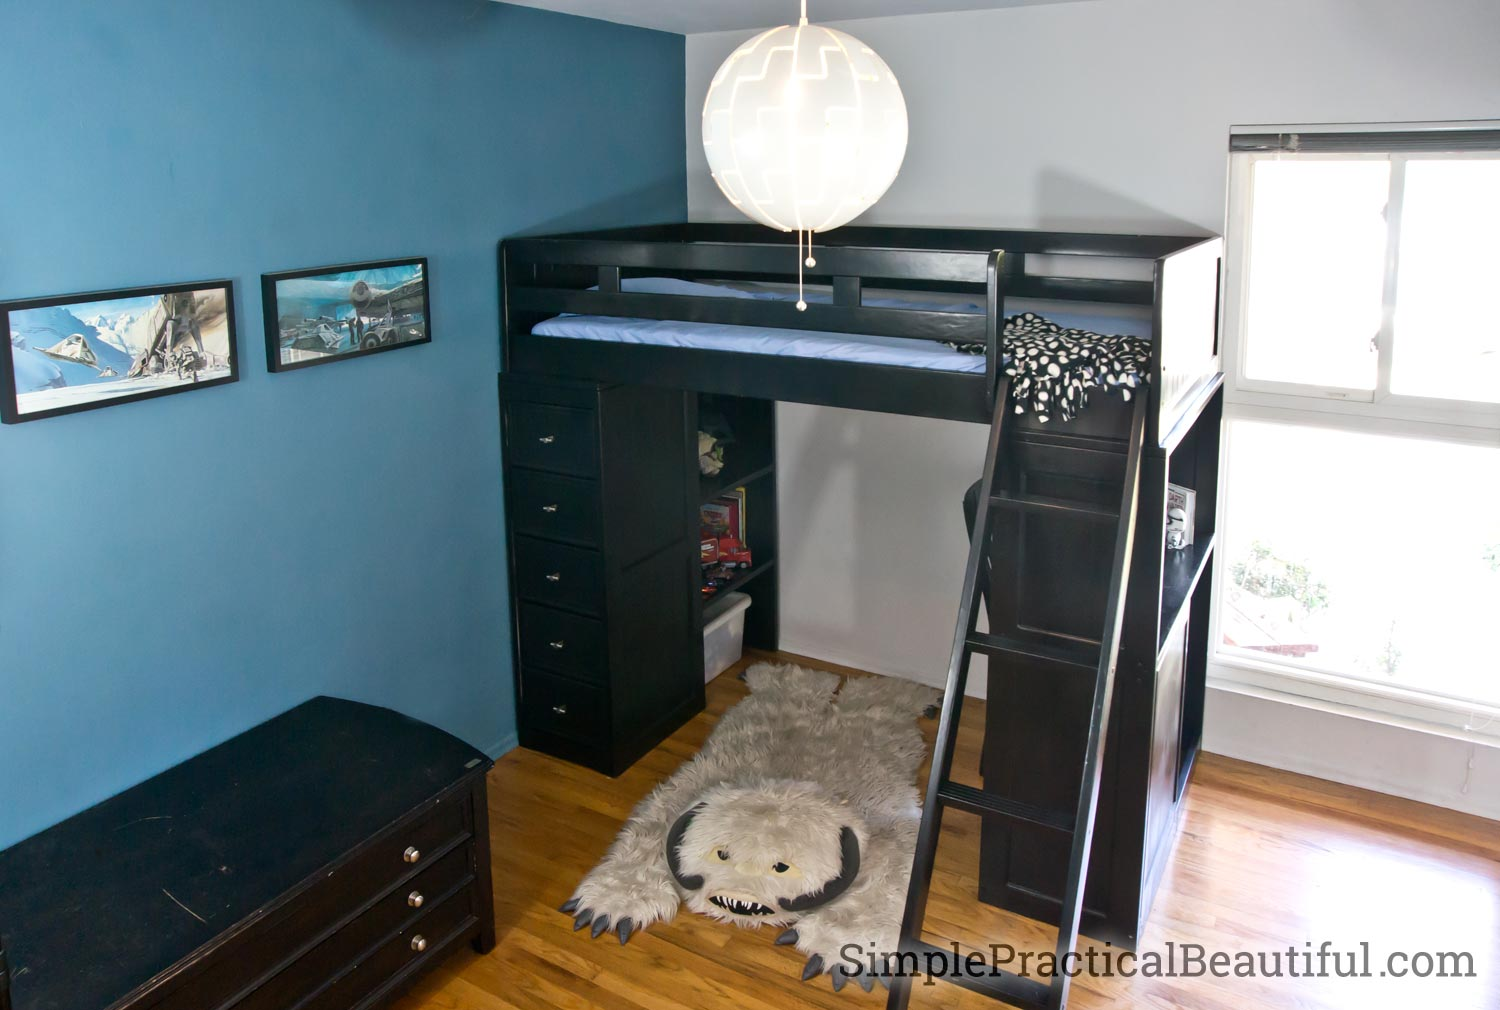 A loft bed refinished in black to work in a Star Wars bedroom